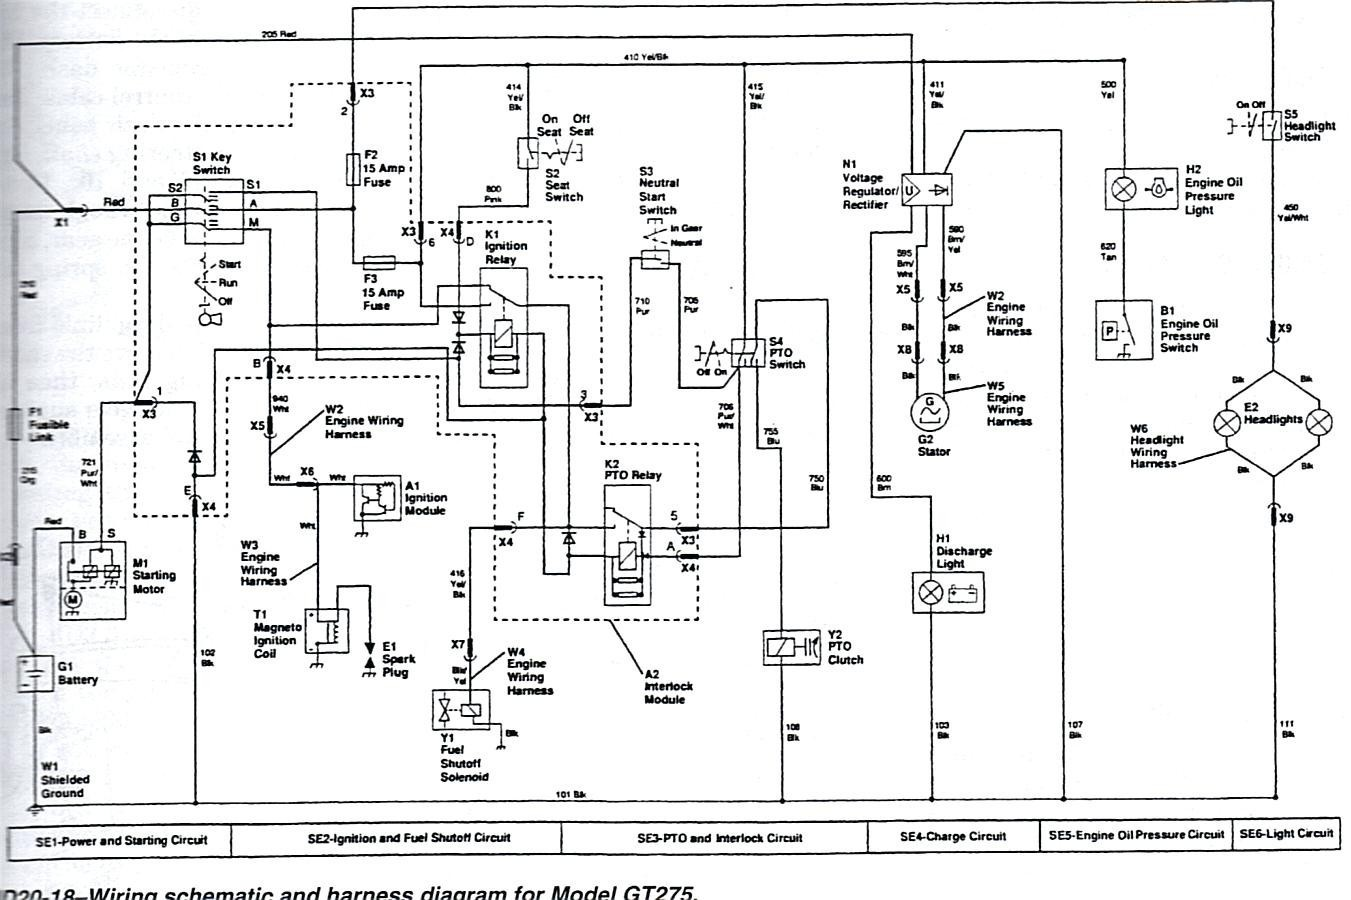 john deere 345 electrical schematic inspirational free image about wiring diagram as well as john deere lt150 of john deere 345 electrical schematic 1